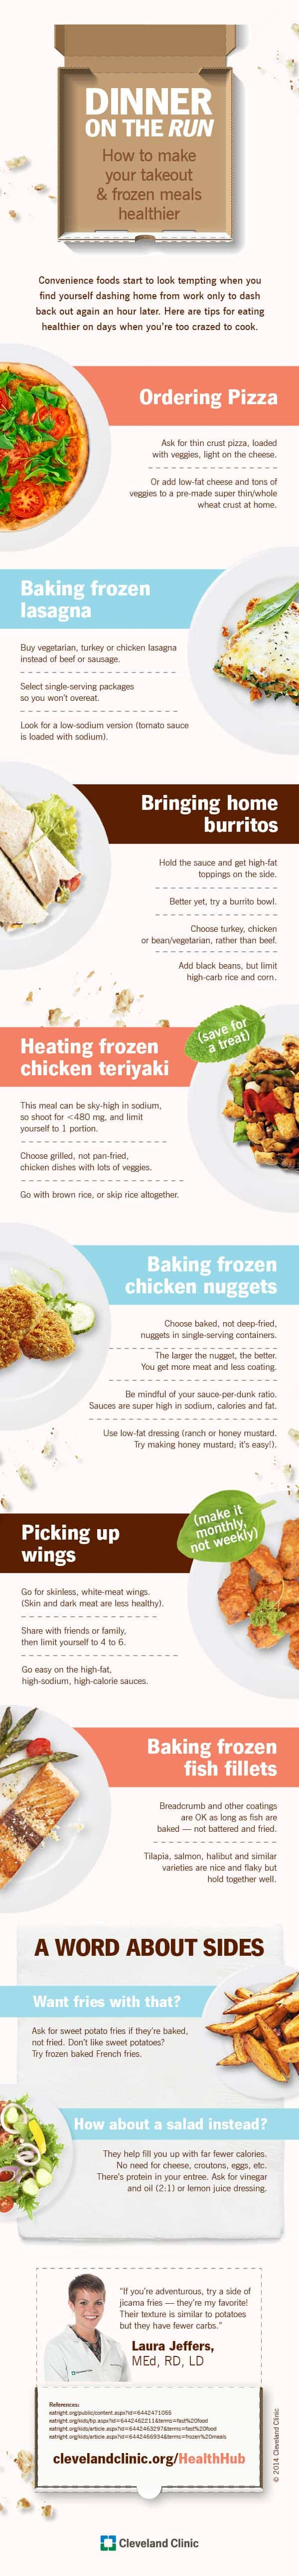 How to Make Your takeout & Frozen Meals Healthier